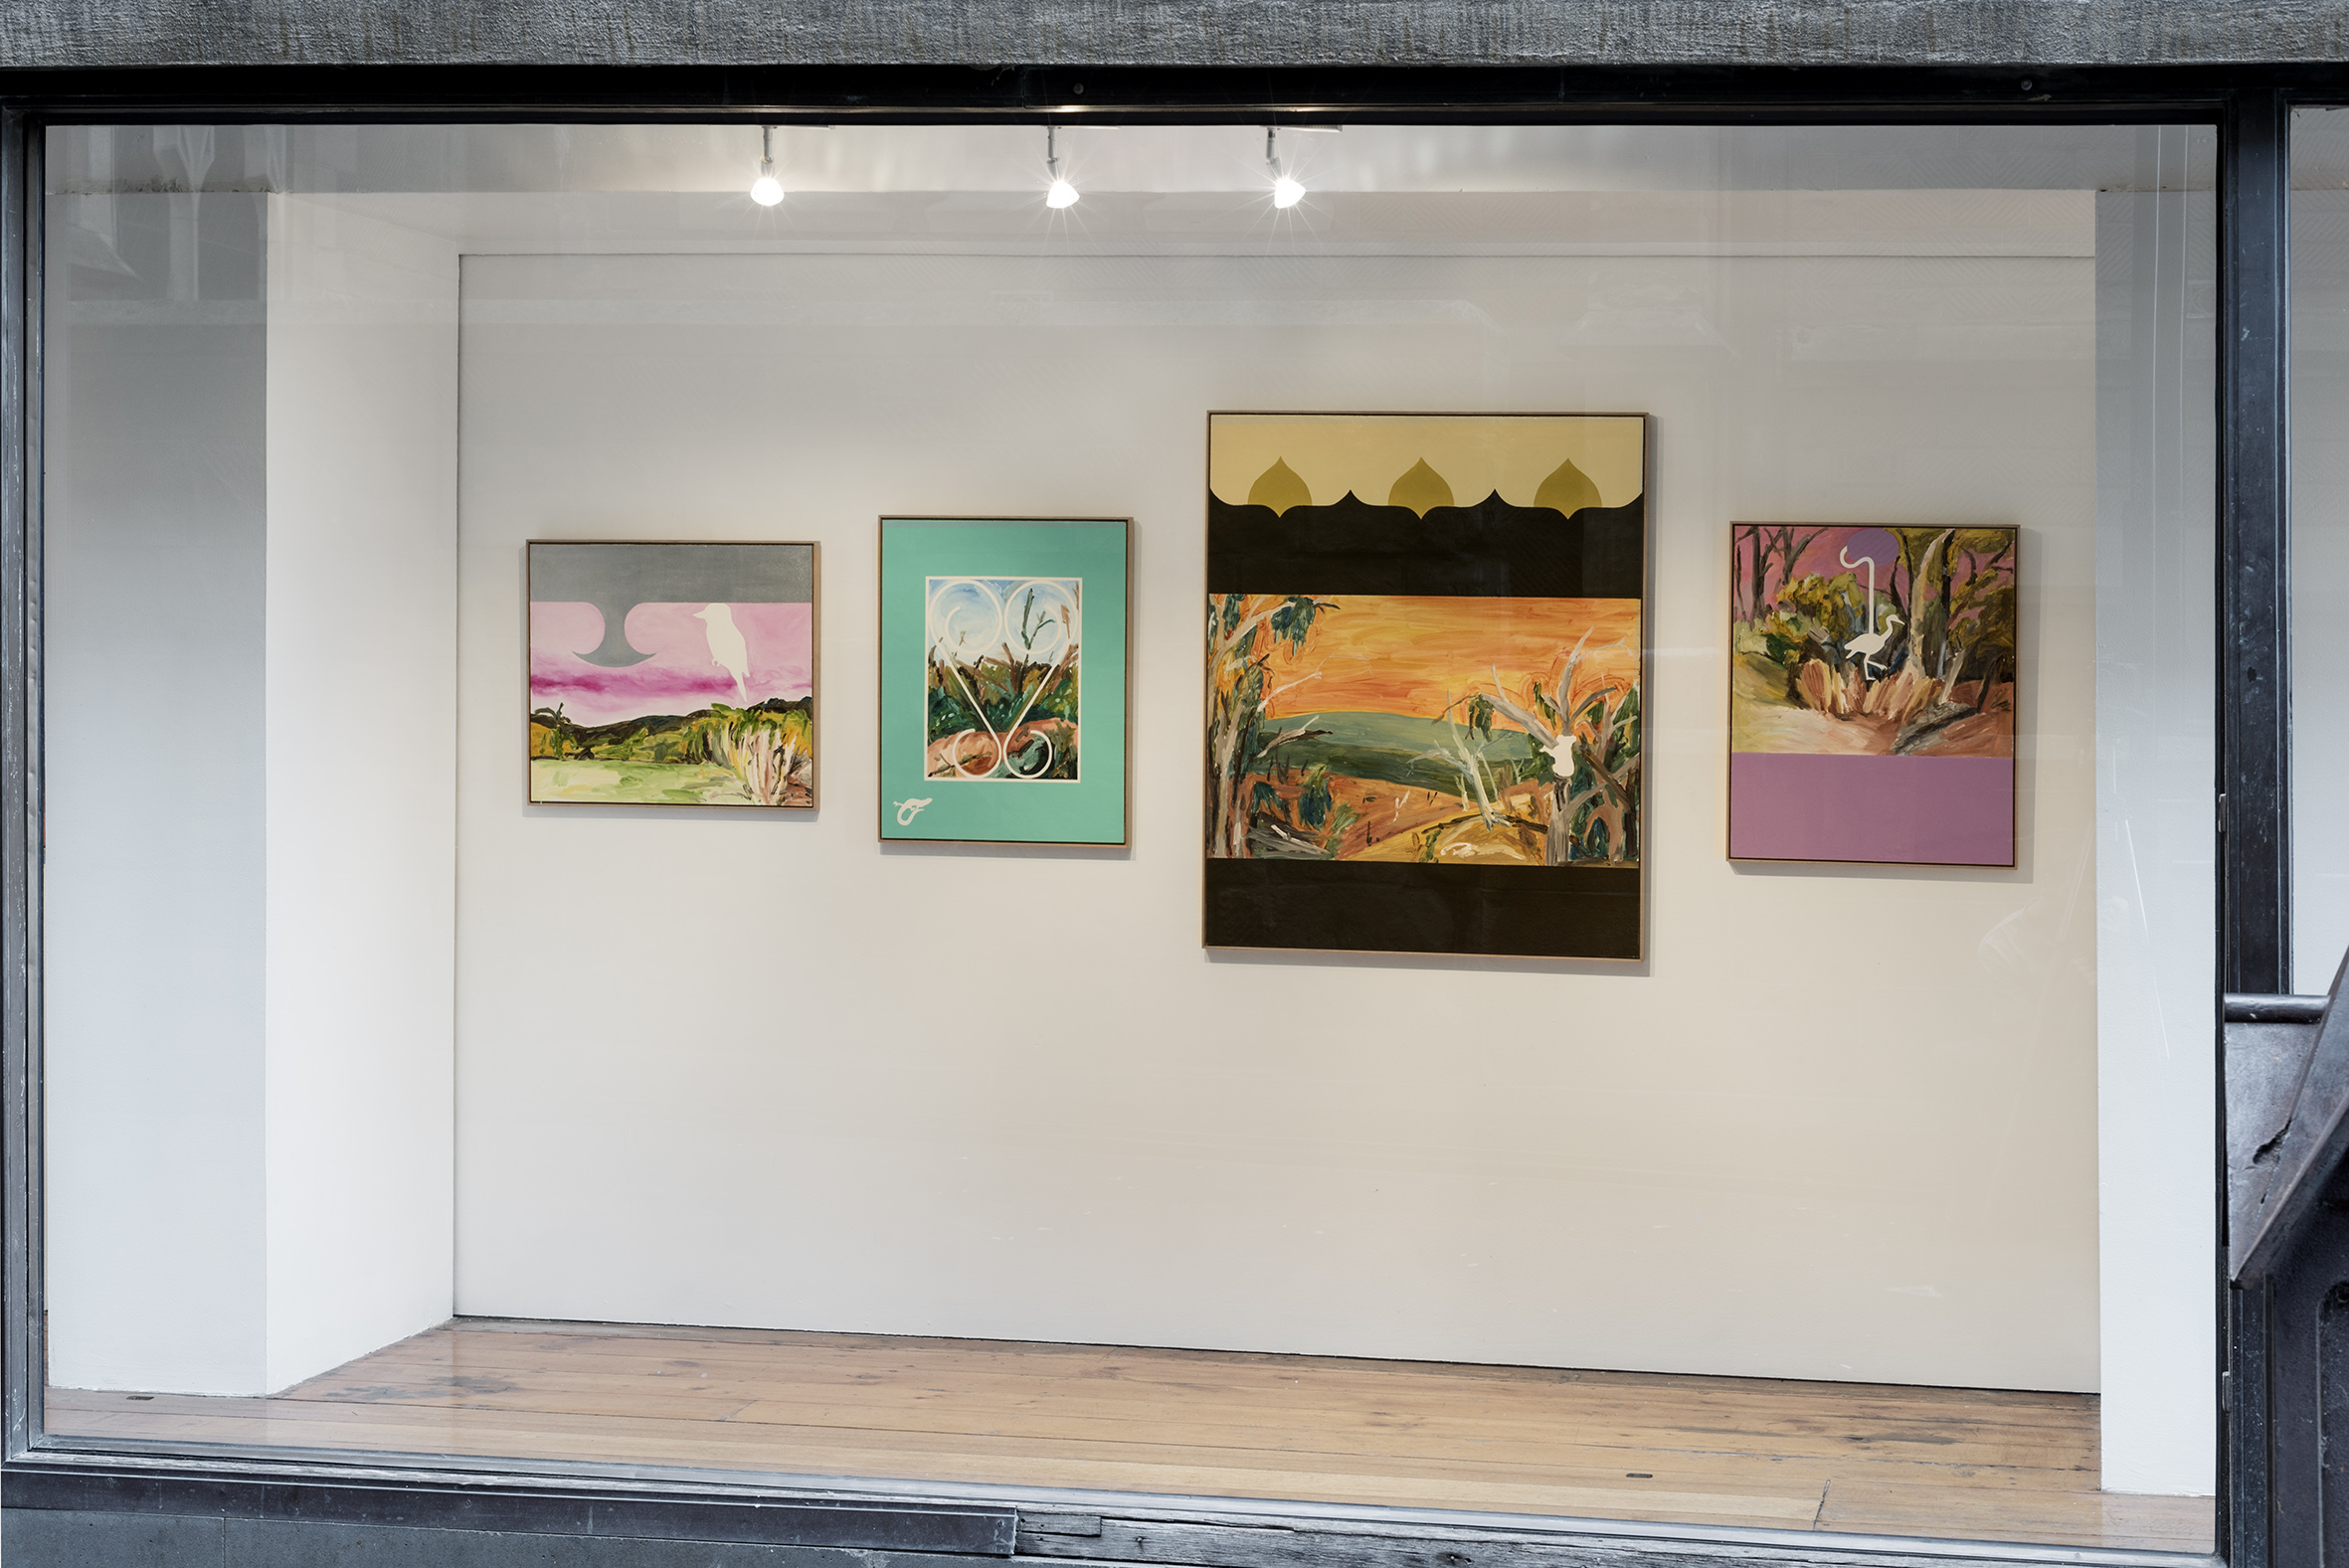 Install photos by Aaron Claringbold